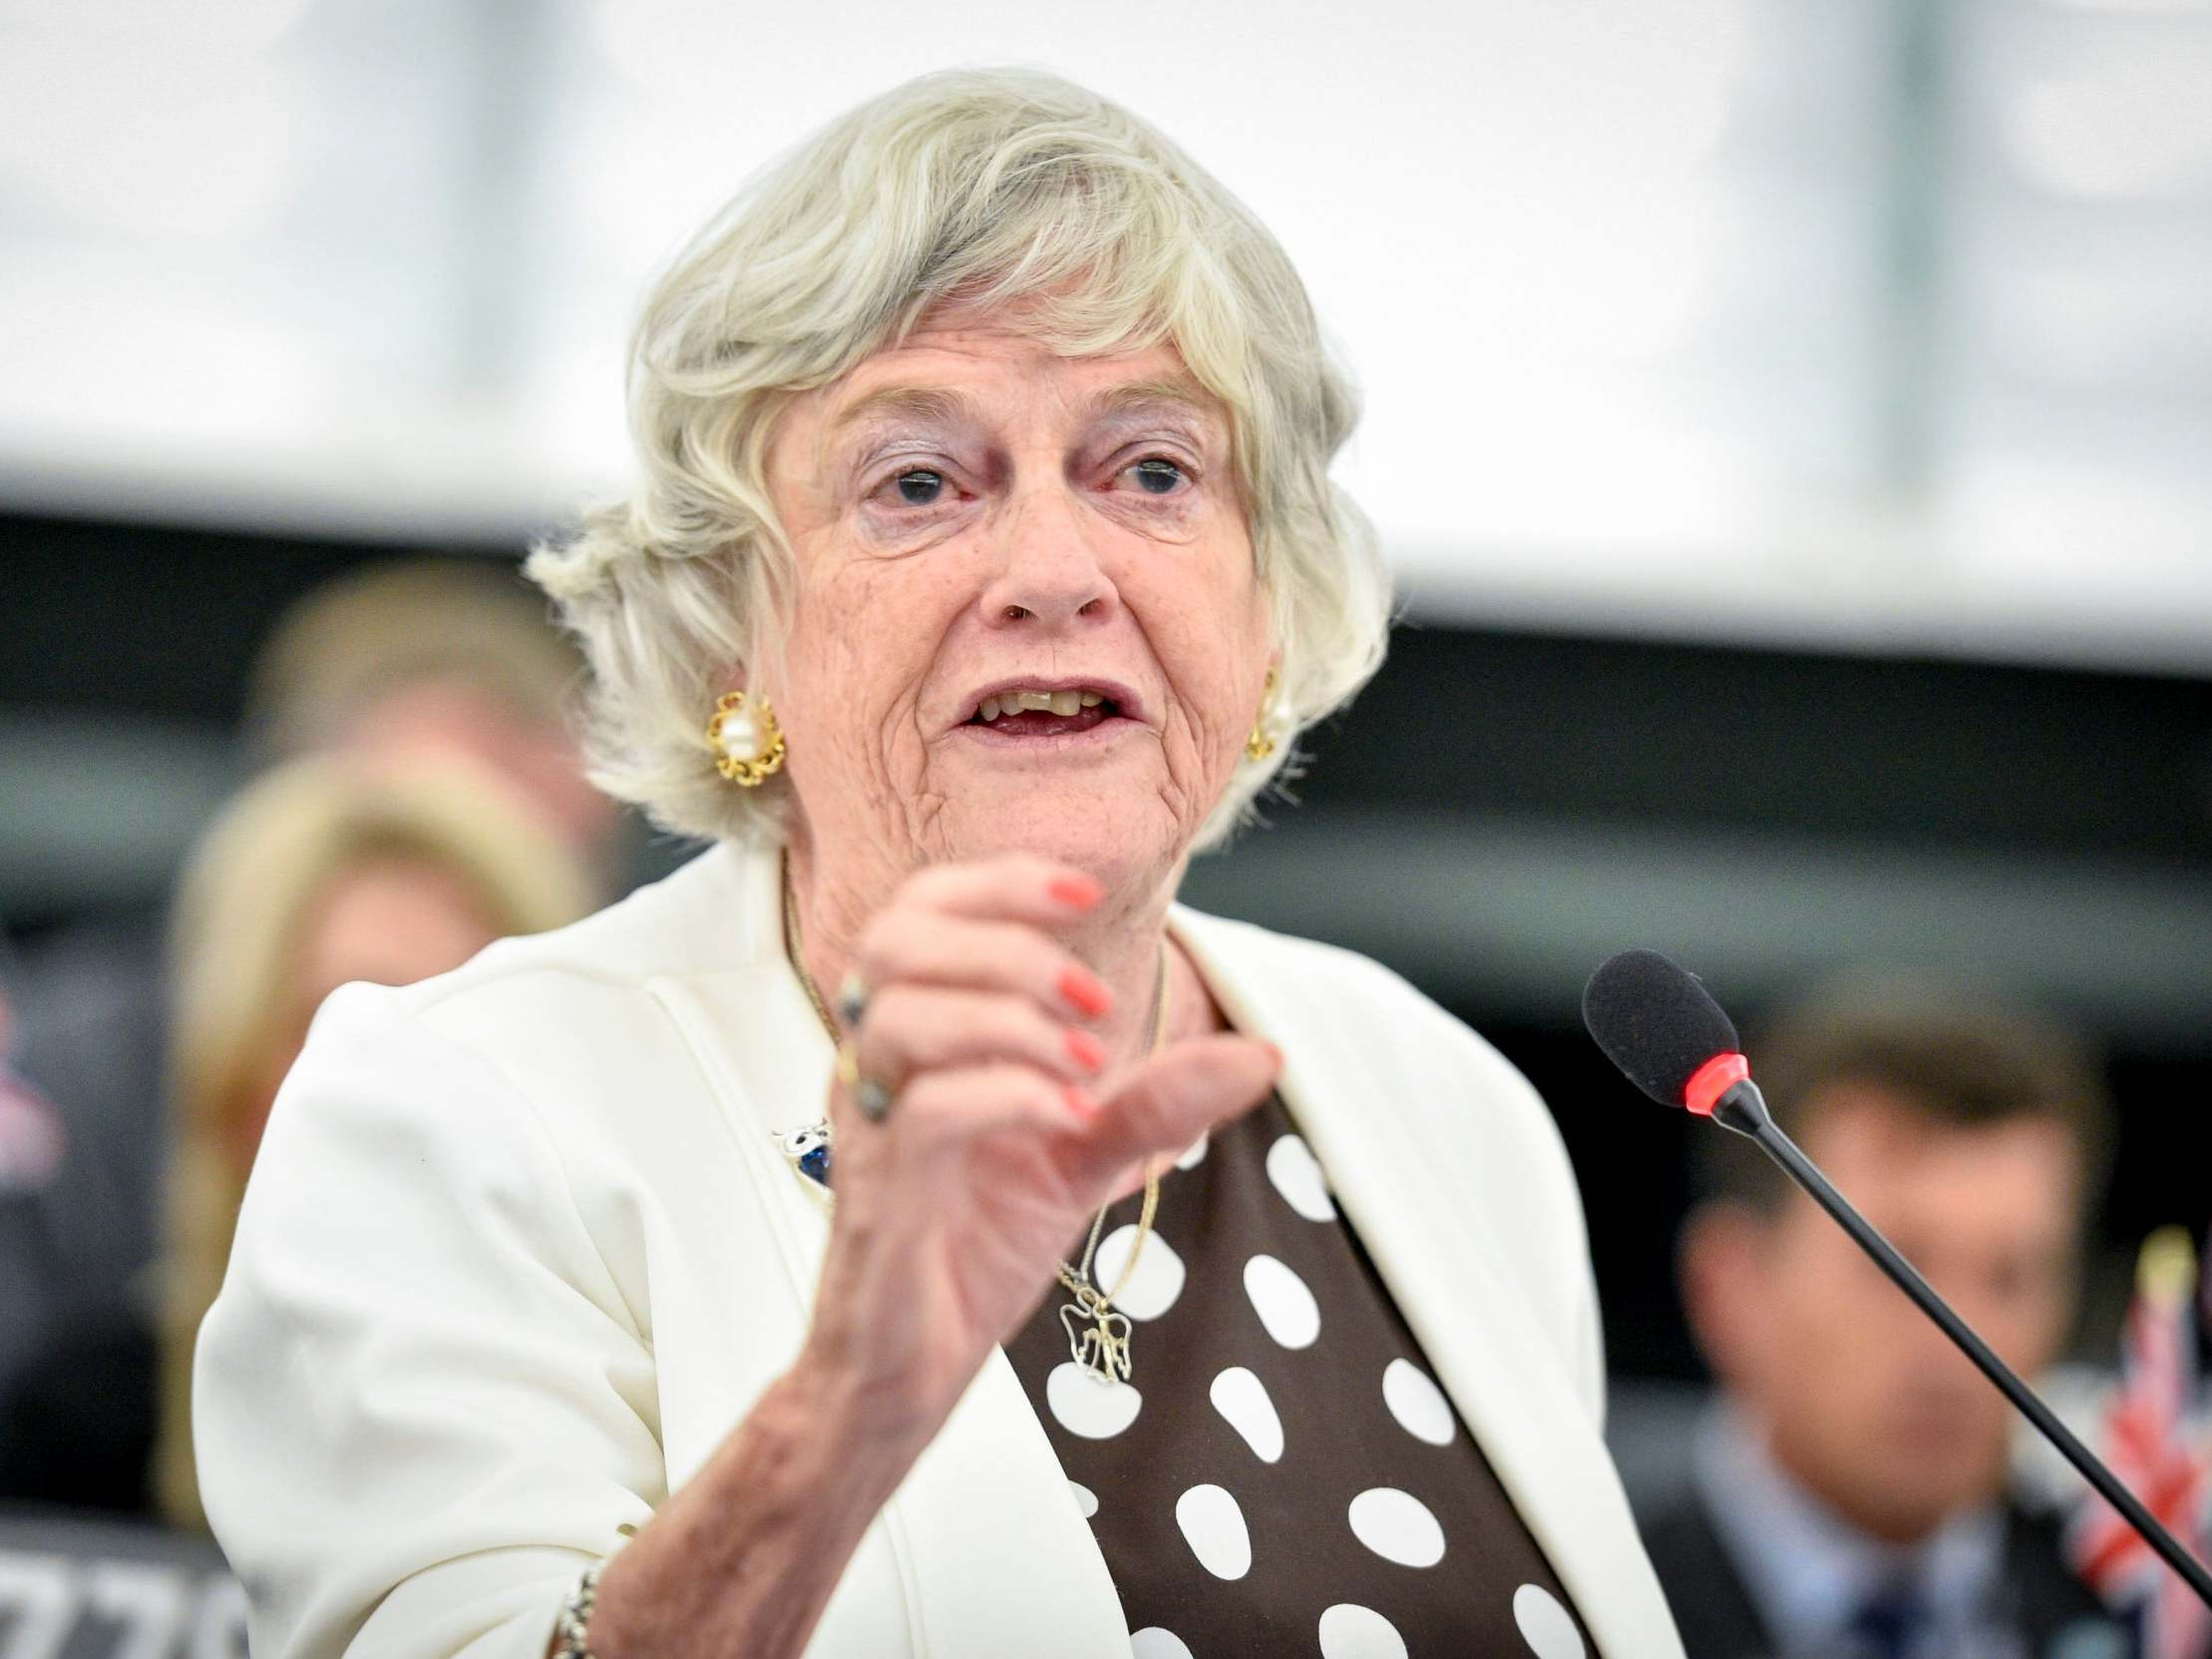 Ann Widdecombe: Fury as MEP compares Brexit to 'slaves rising up against their owners' 9